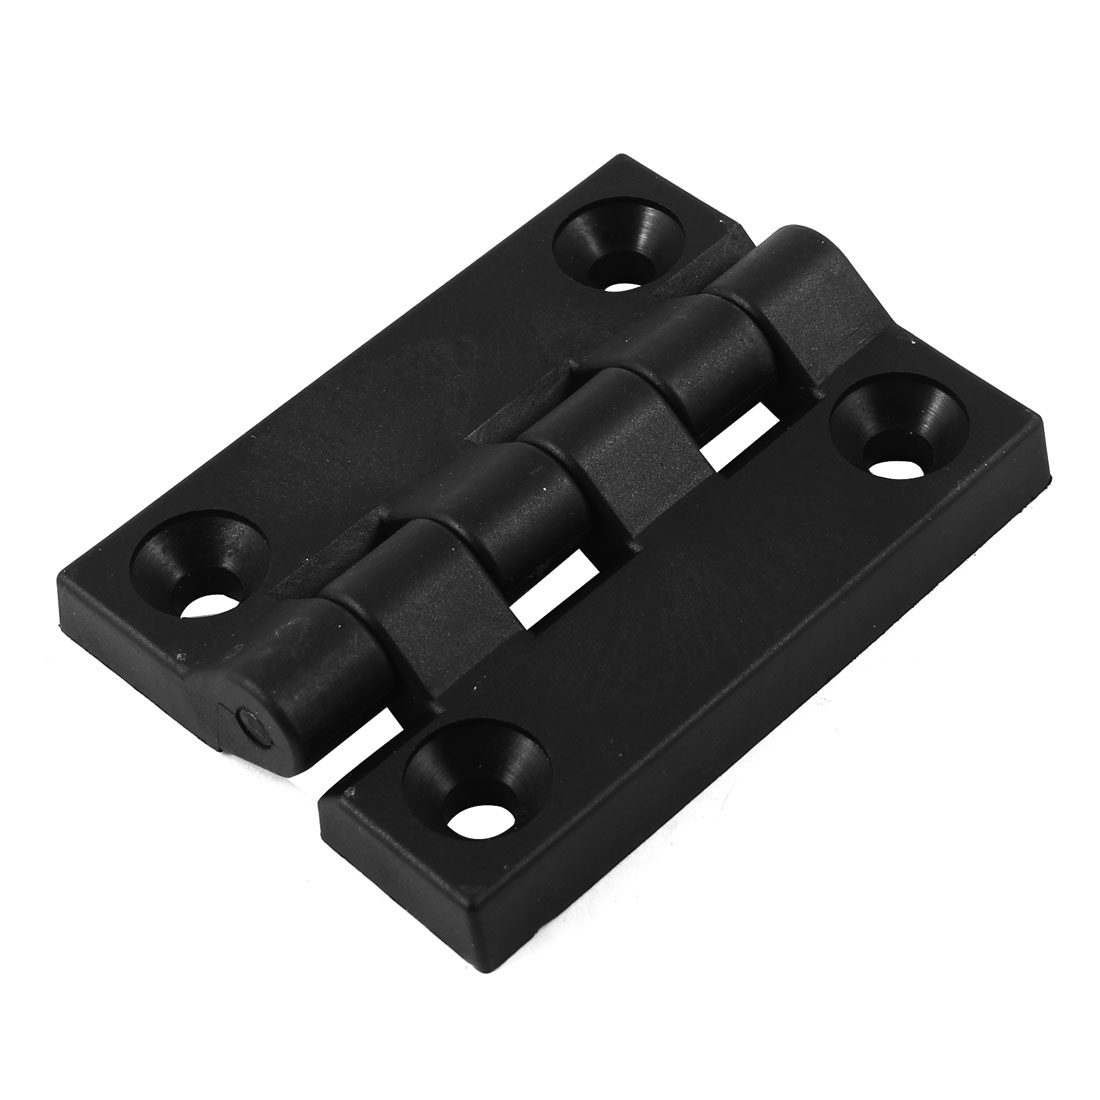 102mm x 80mm Cabinet Door Screw Mount Butt Ball Bearing Plastic Hinge